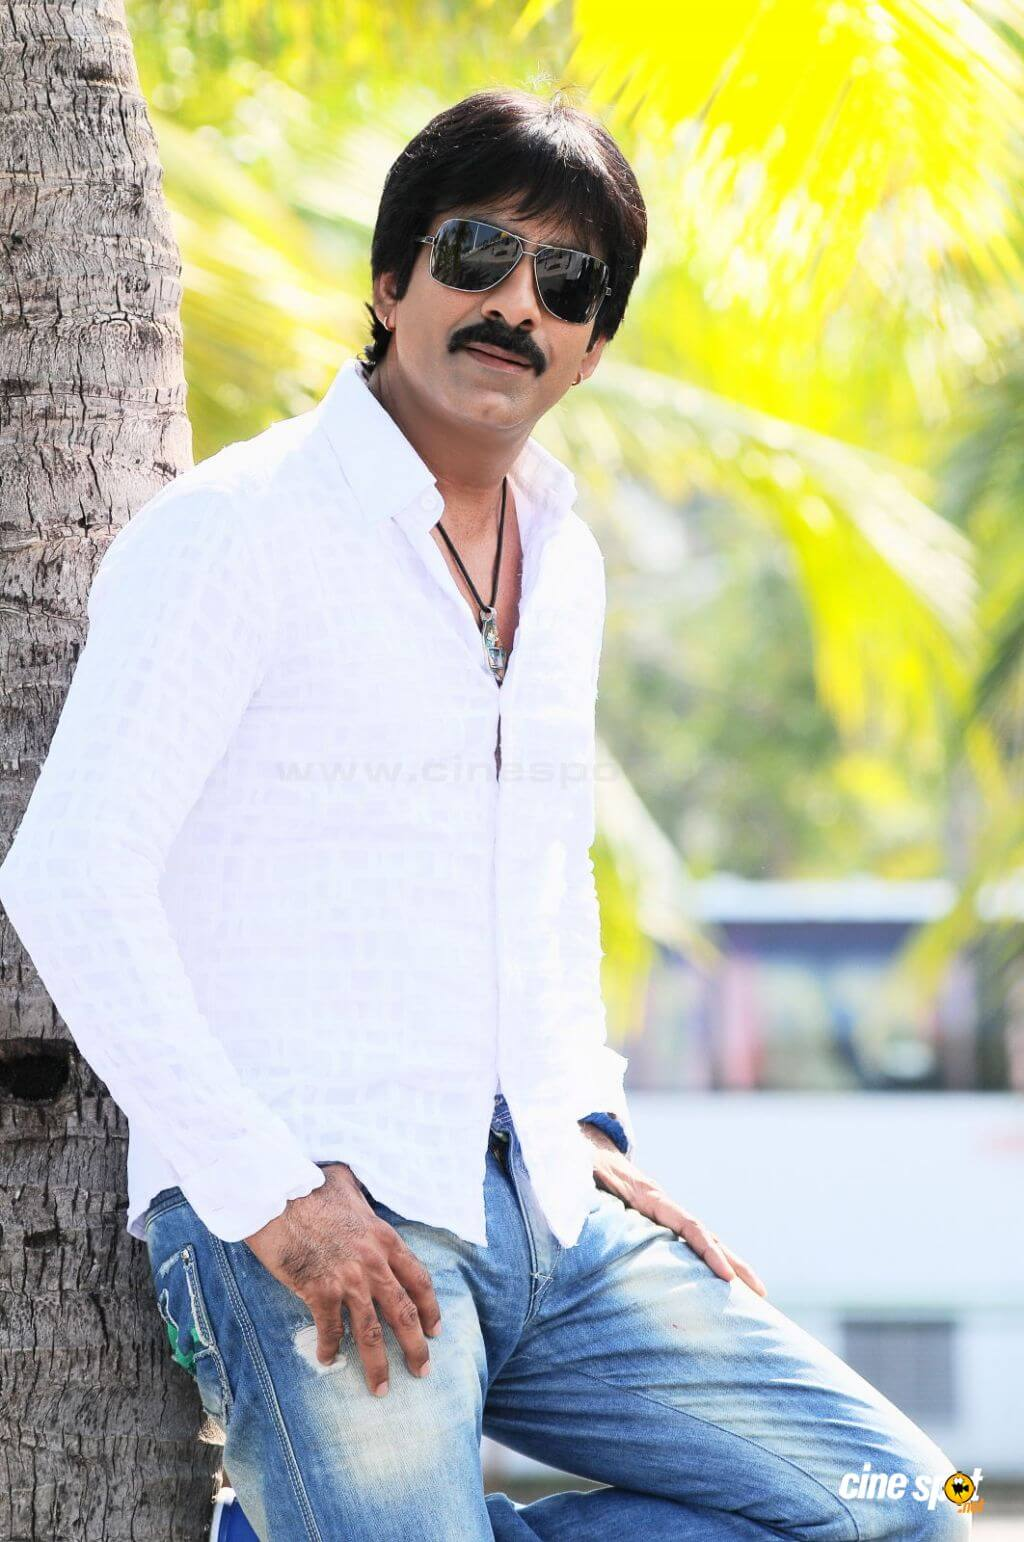 Ravi Teja Movie, Photos(images), Date Of Birth, Family, Brother, Height, Biography, Net Worth, Age, Wife, Details, Education, Instagram, Twitter, Wiki, Imdb, Facebook, Hairstyle, Youtube (37)